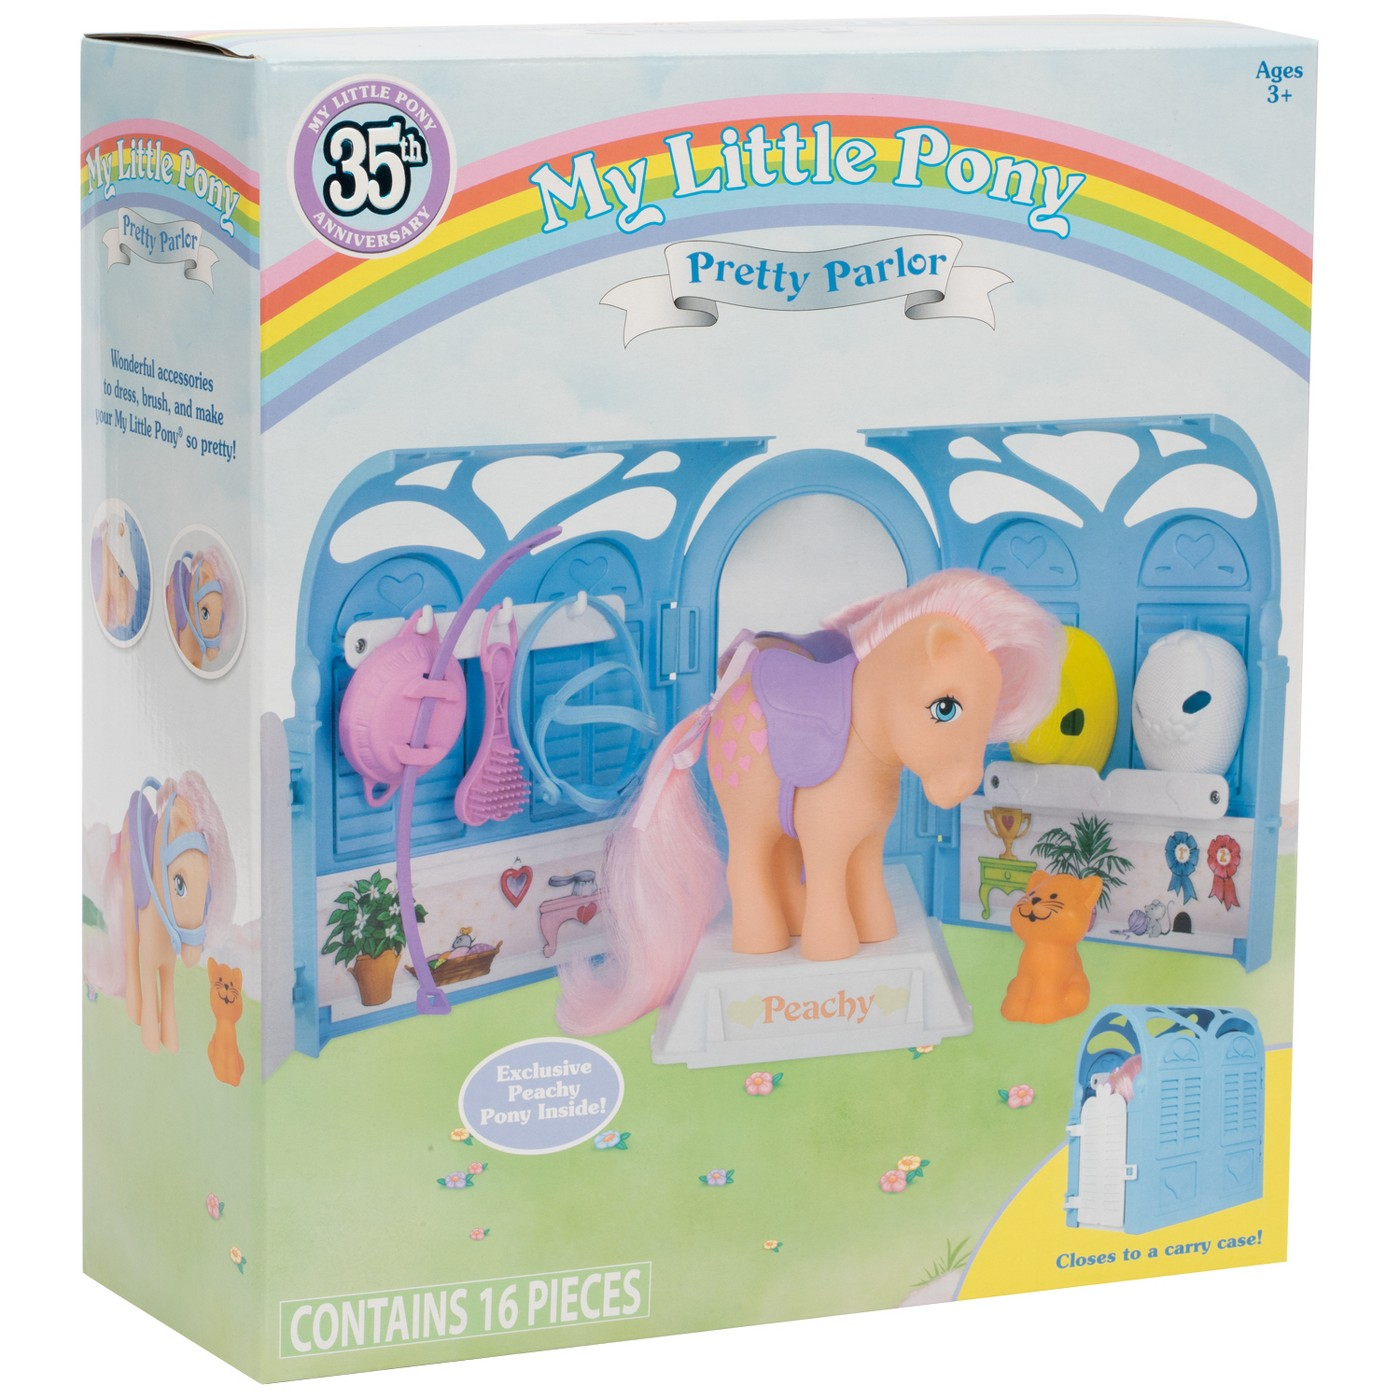 - My Little Pony Retro 35th Anniversary Pretty Parlor Playset